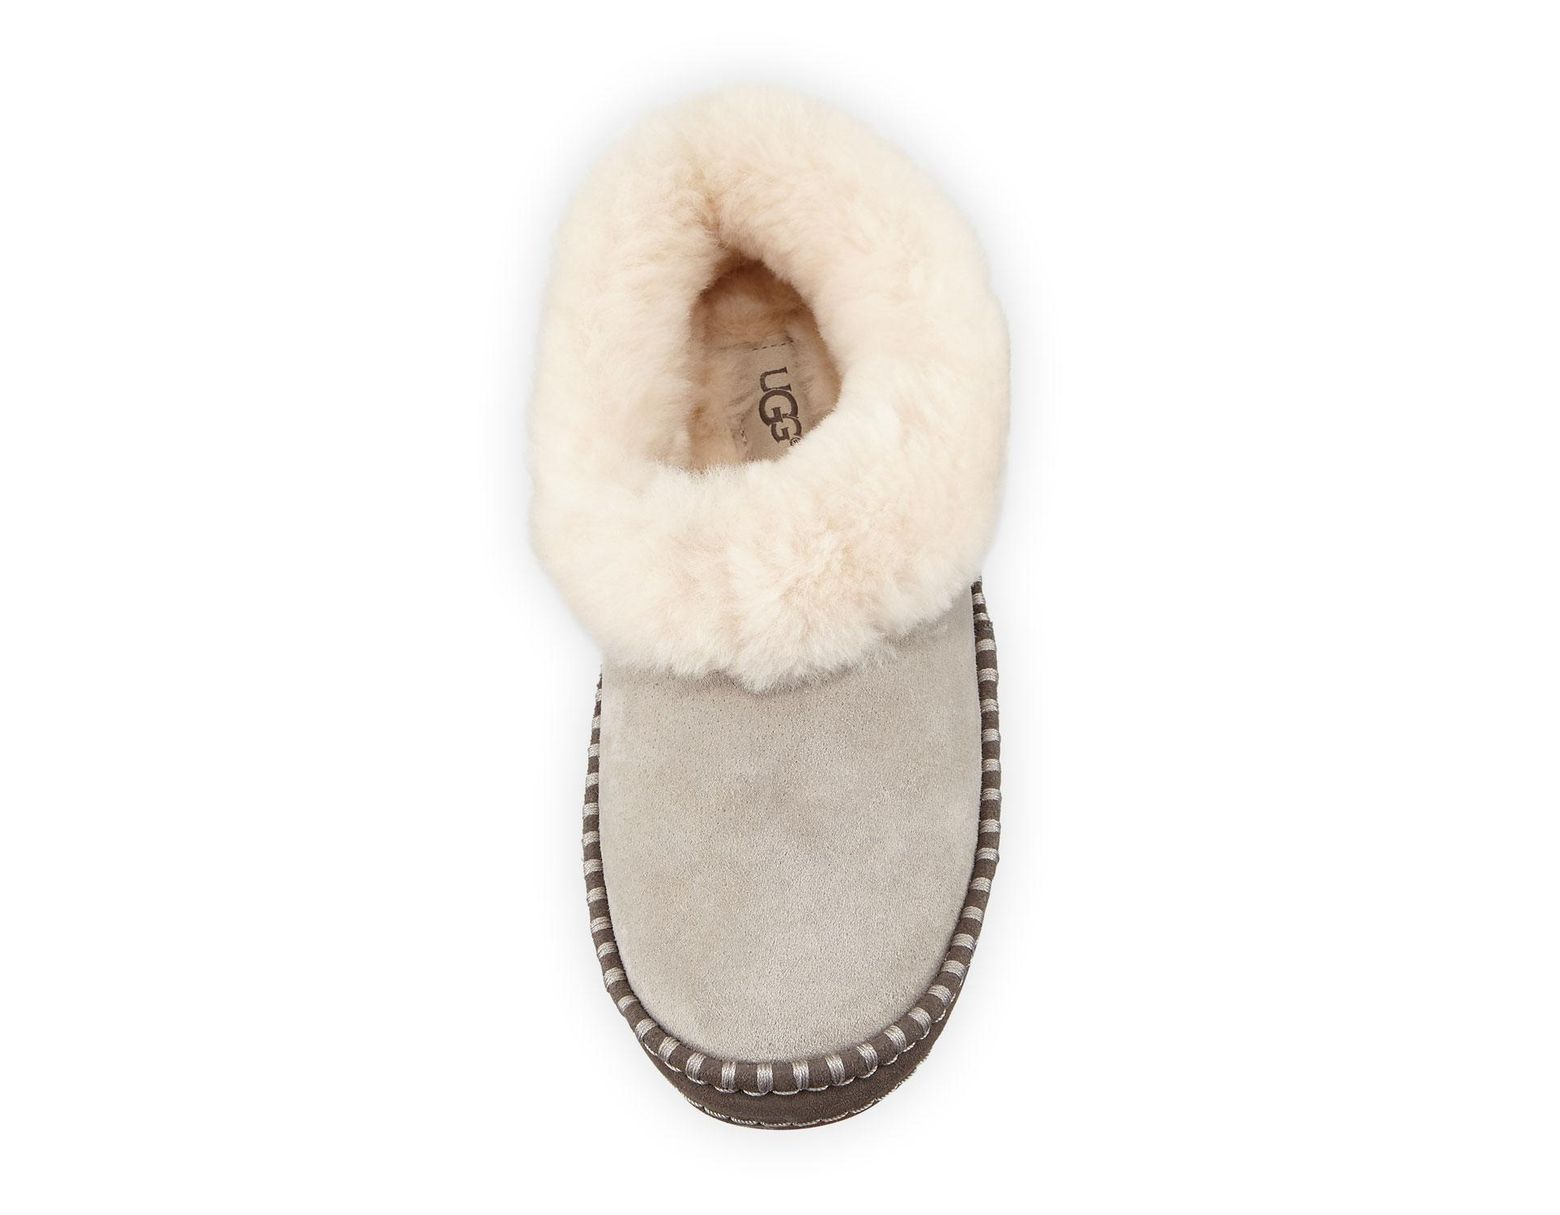 ea186063e UGG Wrin Suede Slippers With Fur Collar in Gray - Lyst